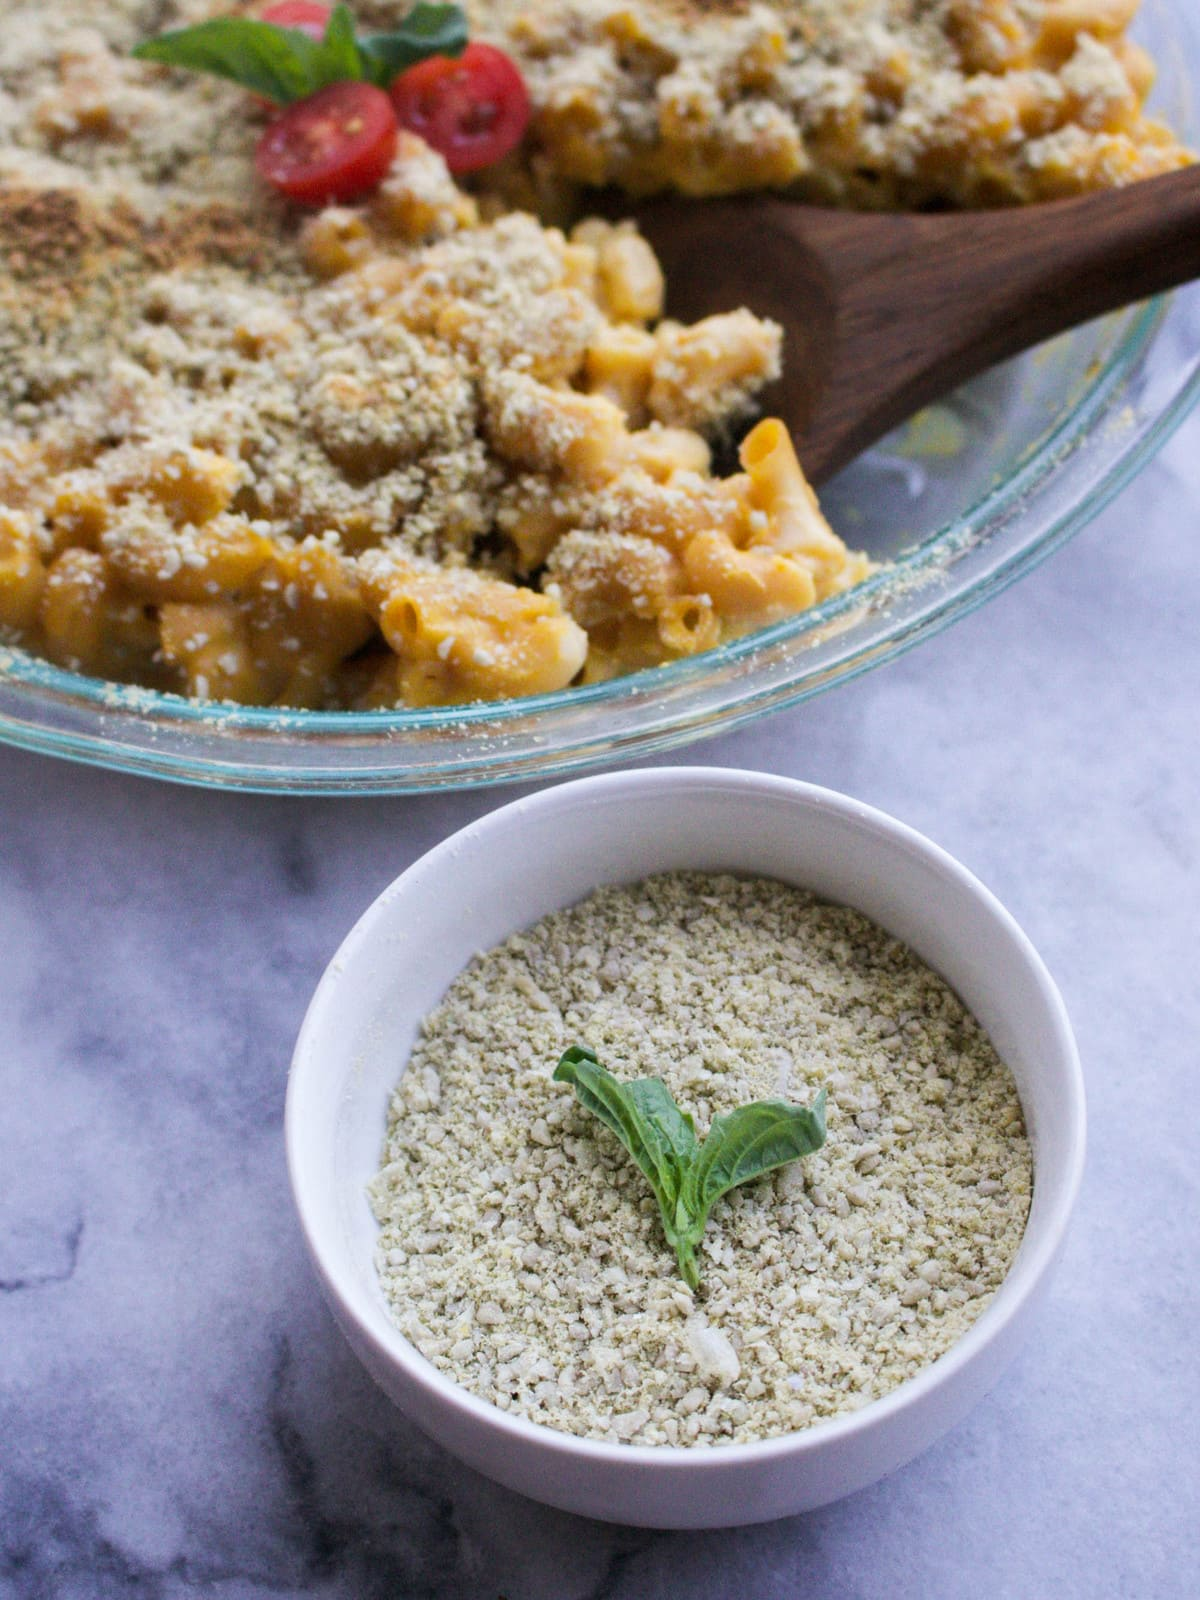 Baked_Vegan_Mac_and_Cheese_Gluten_Free_Healthy_FromMyBowl-3